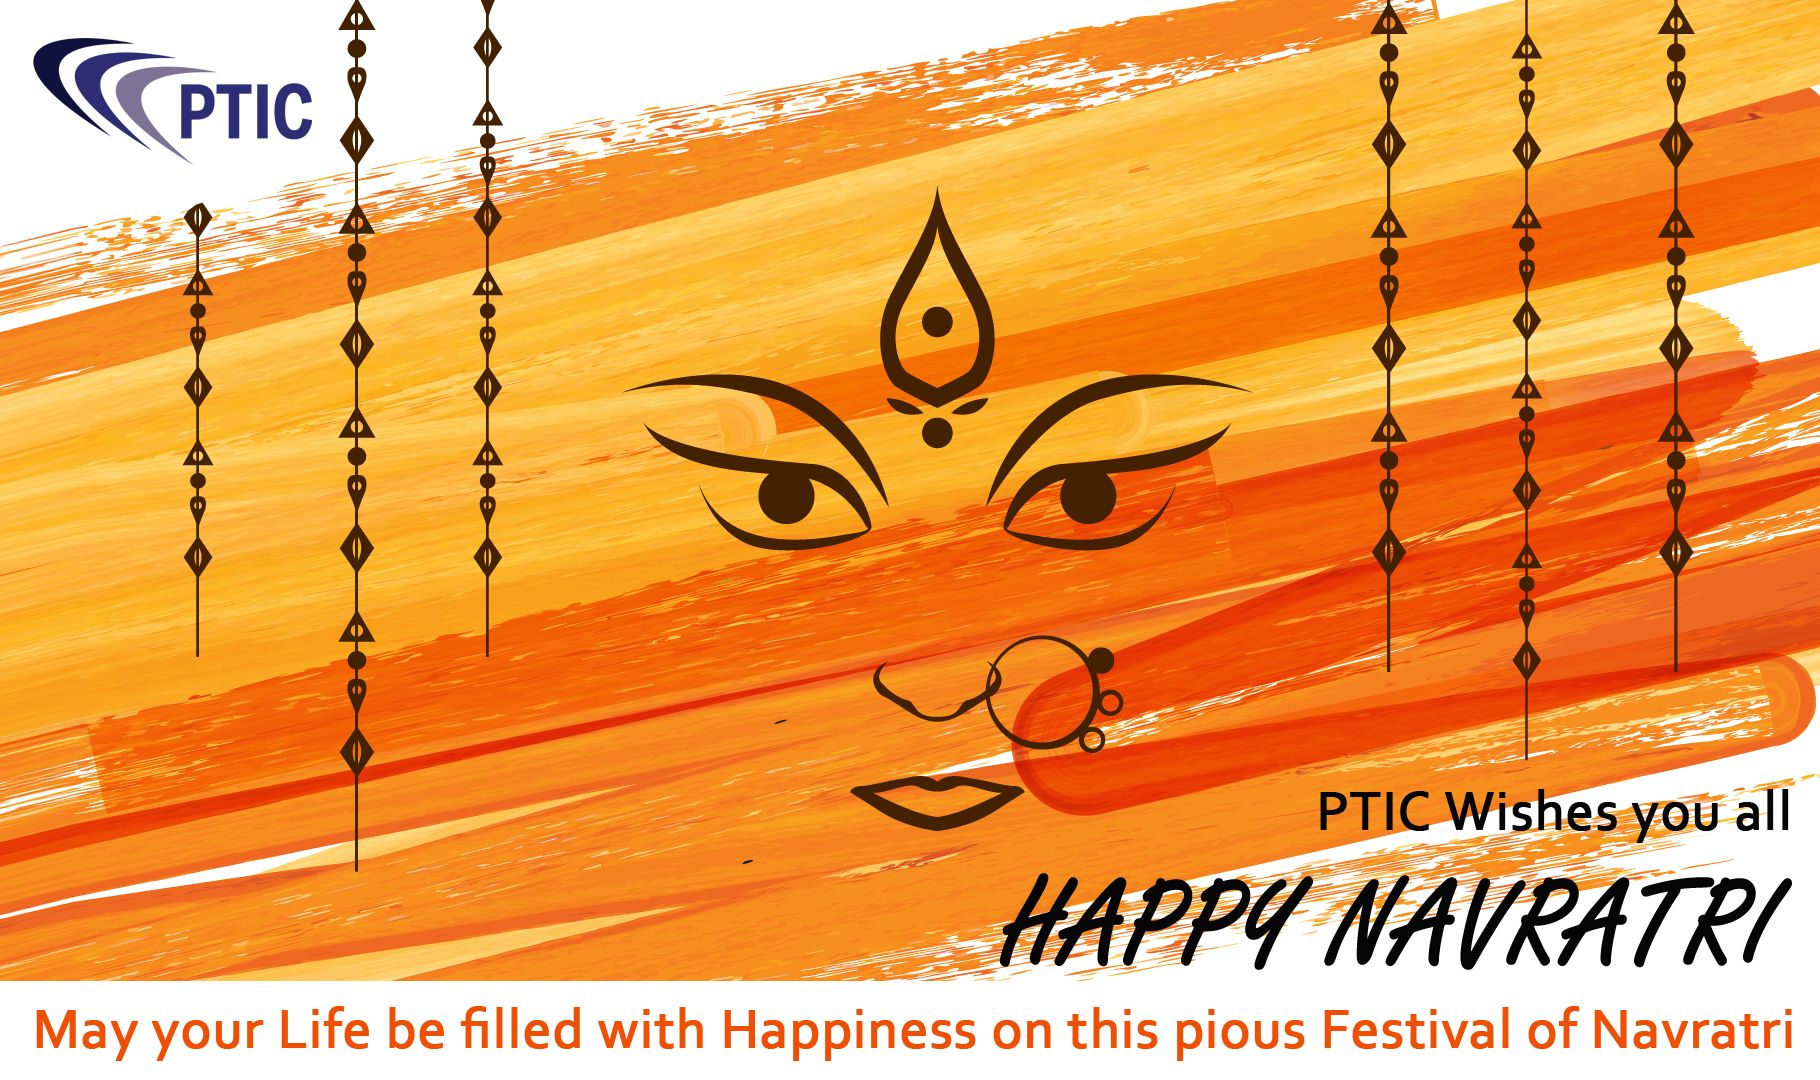 Ptic Wishes You All Happy Navratri May Your Life Be Filled With